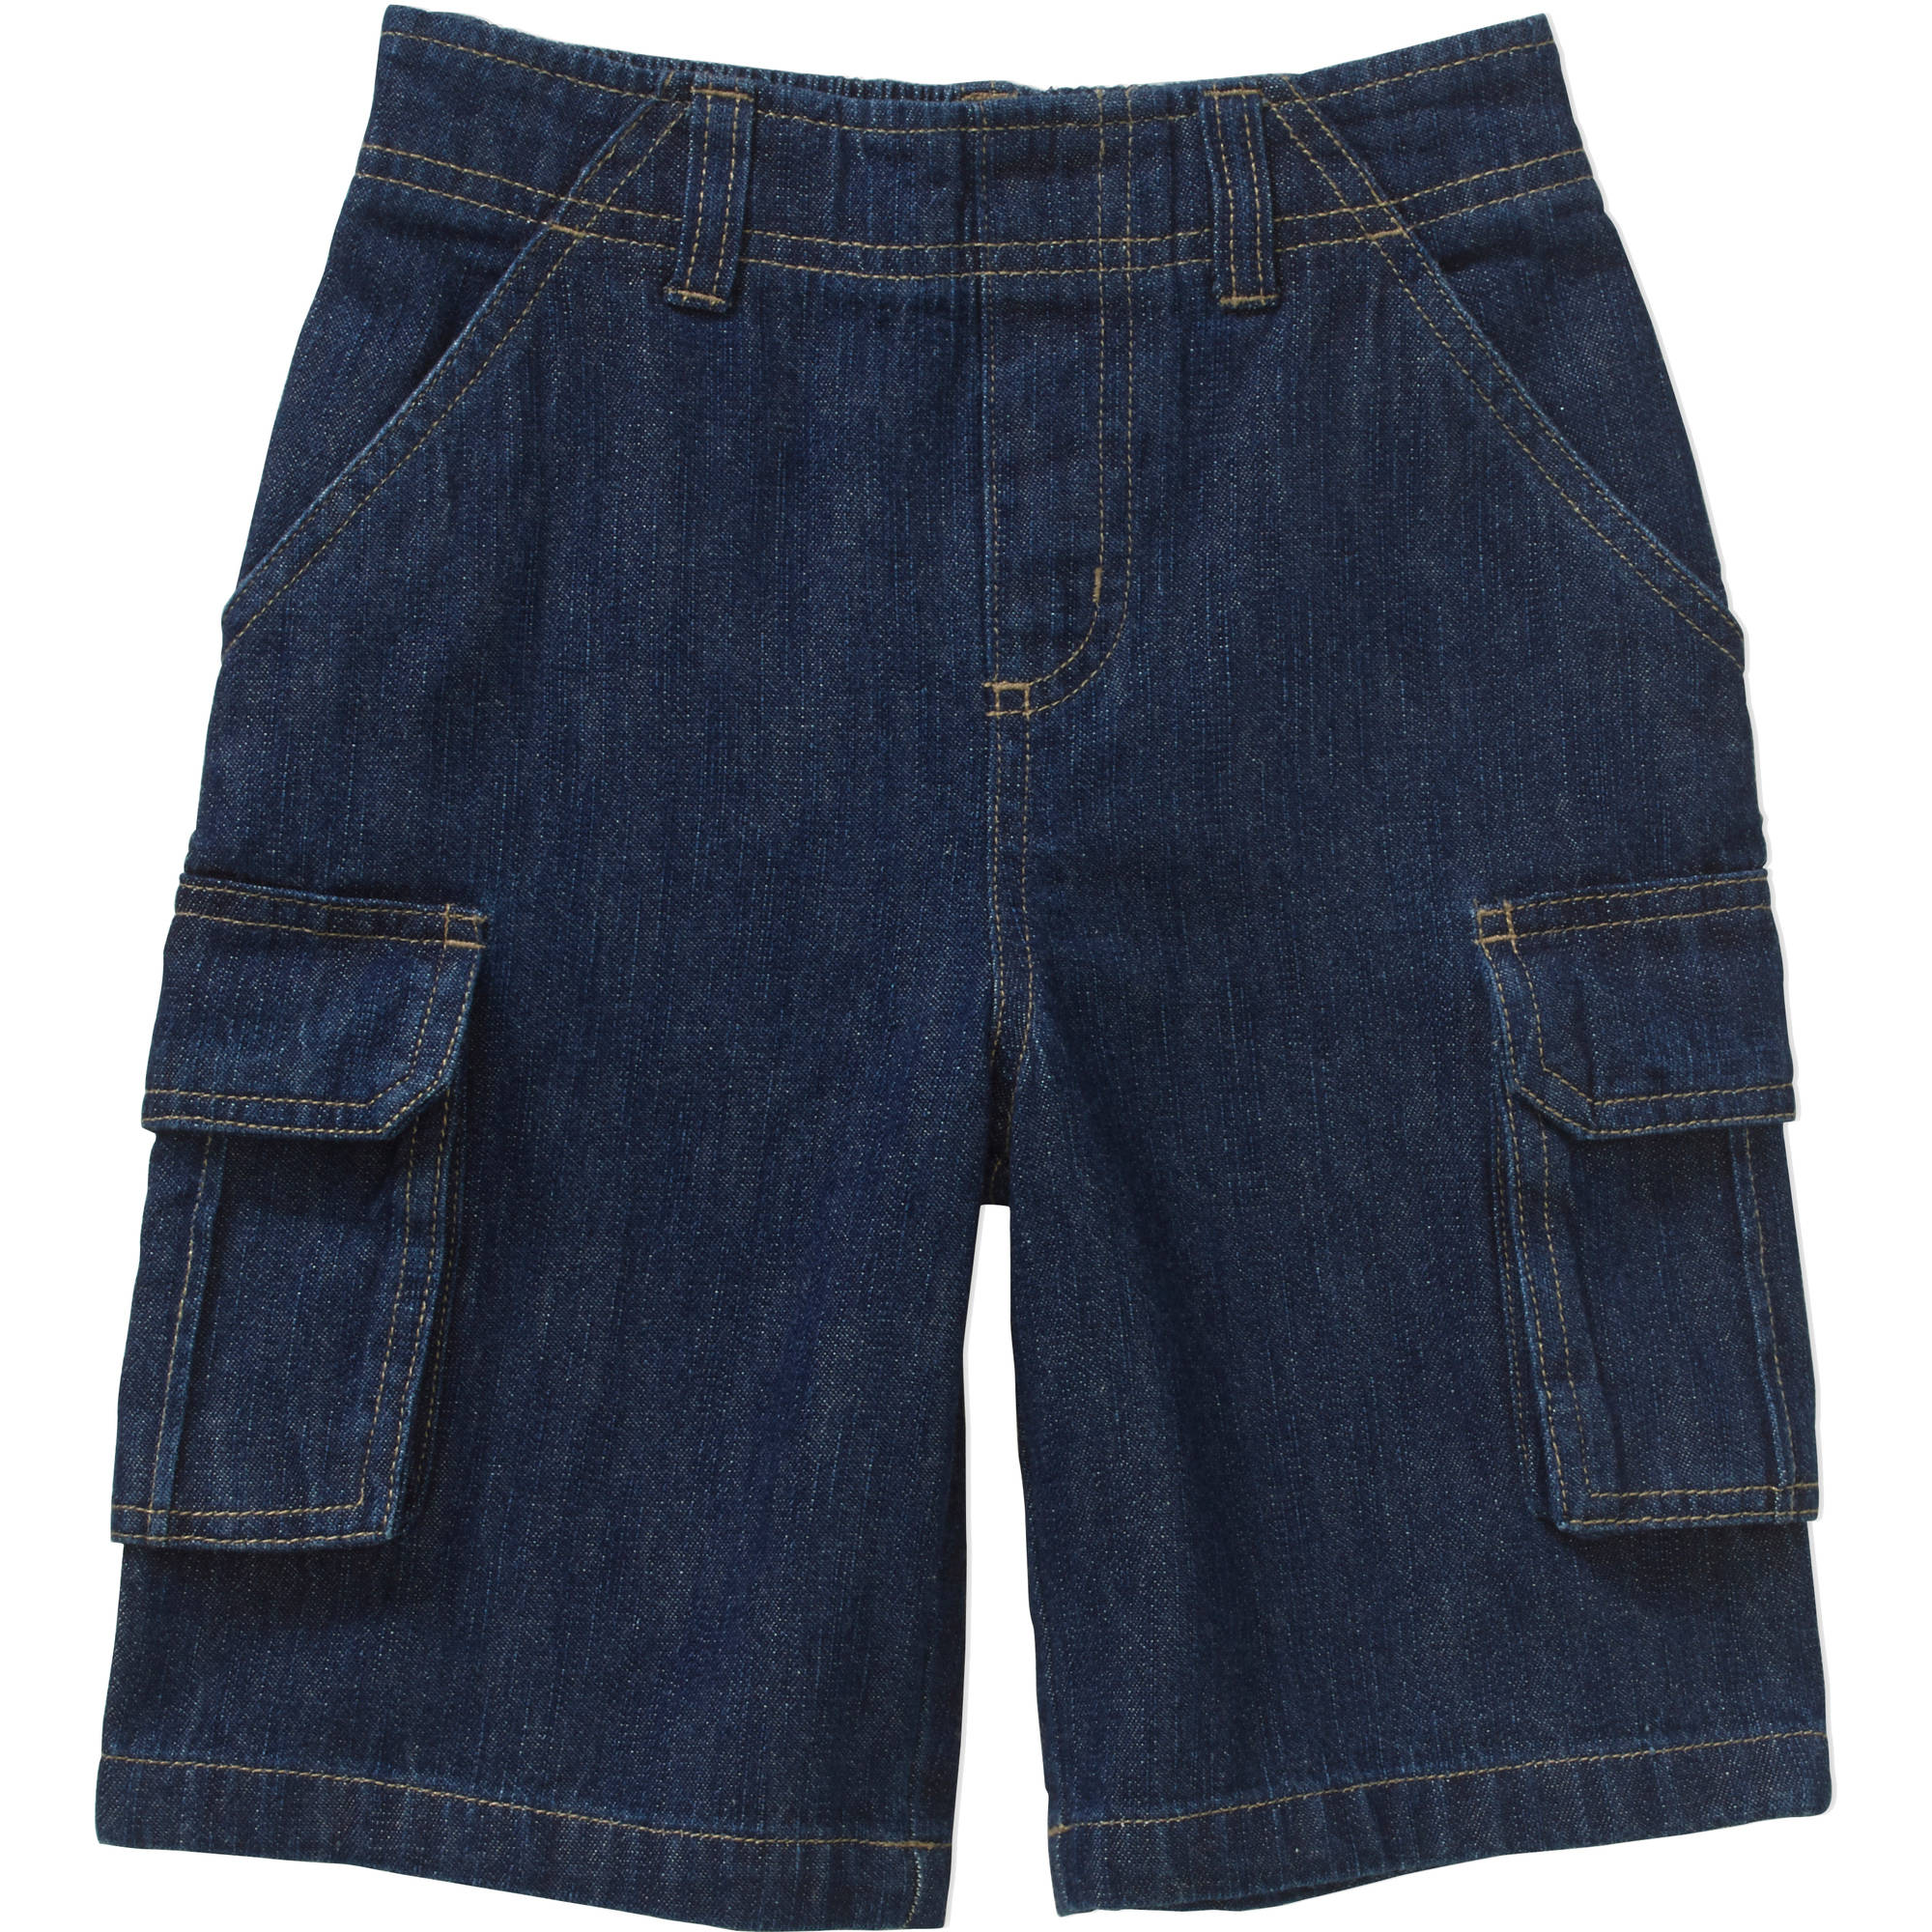 Image of 365 Kids From Garanimals Boys Denim Cargo Shorts